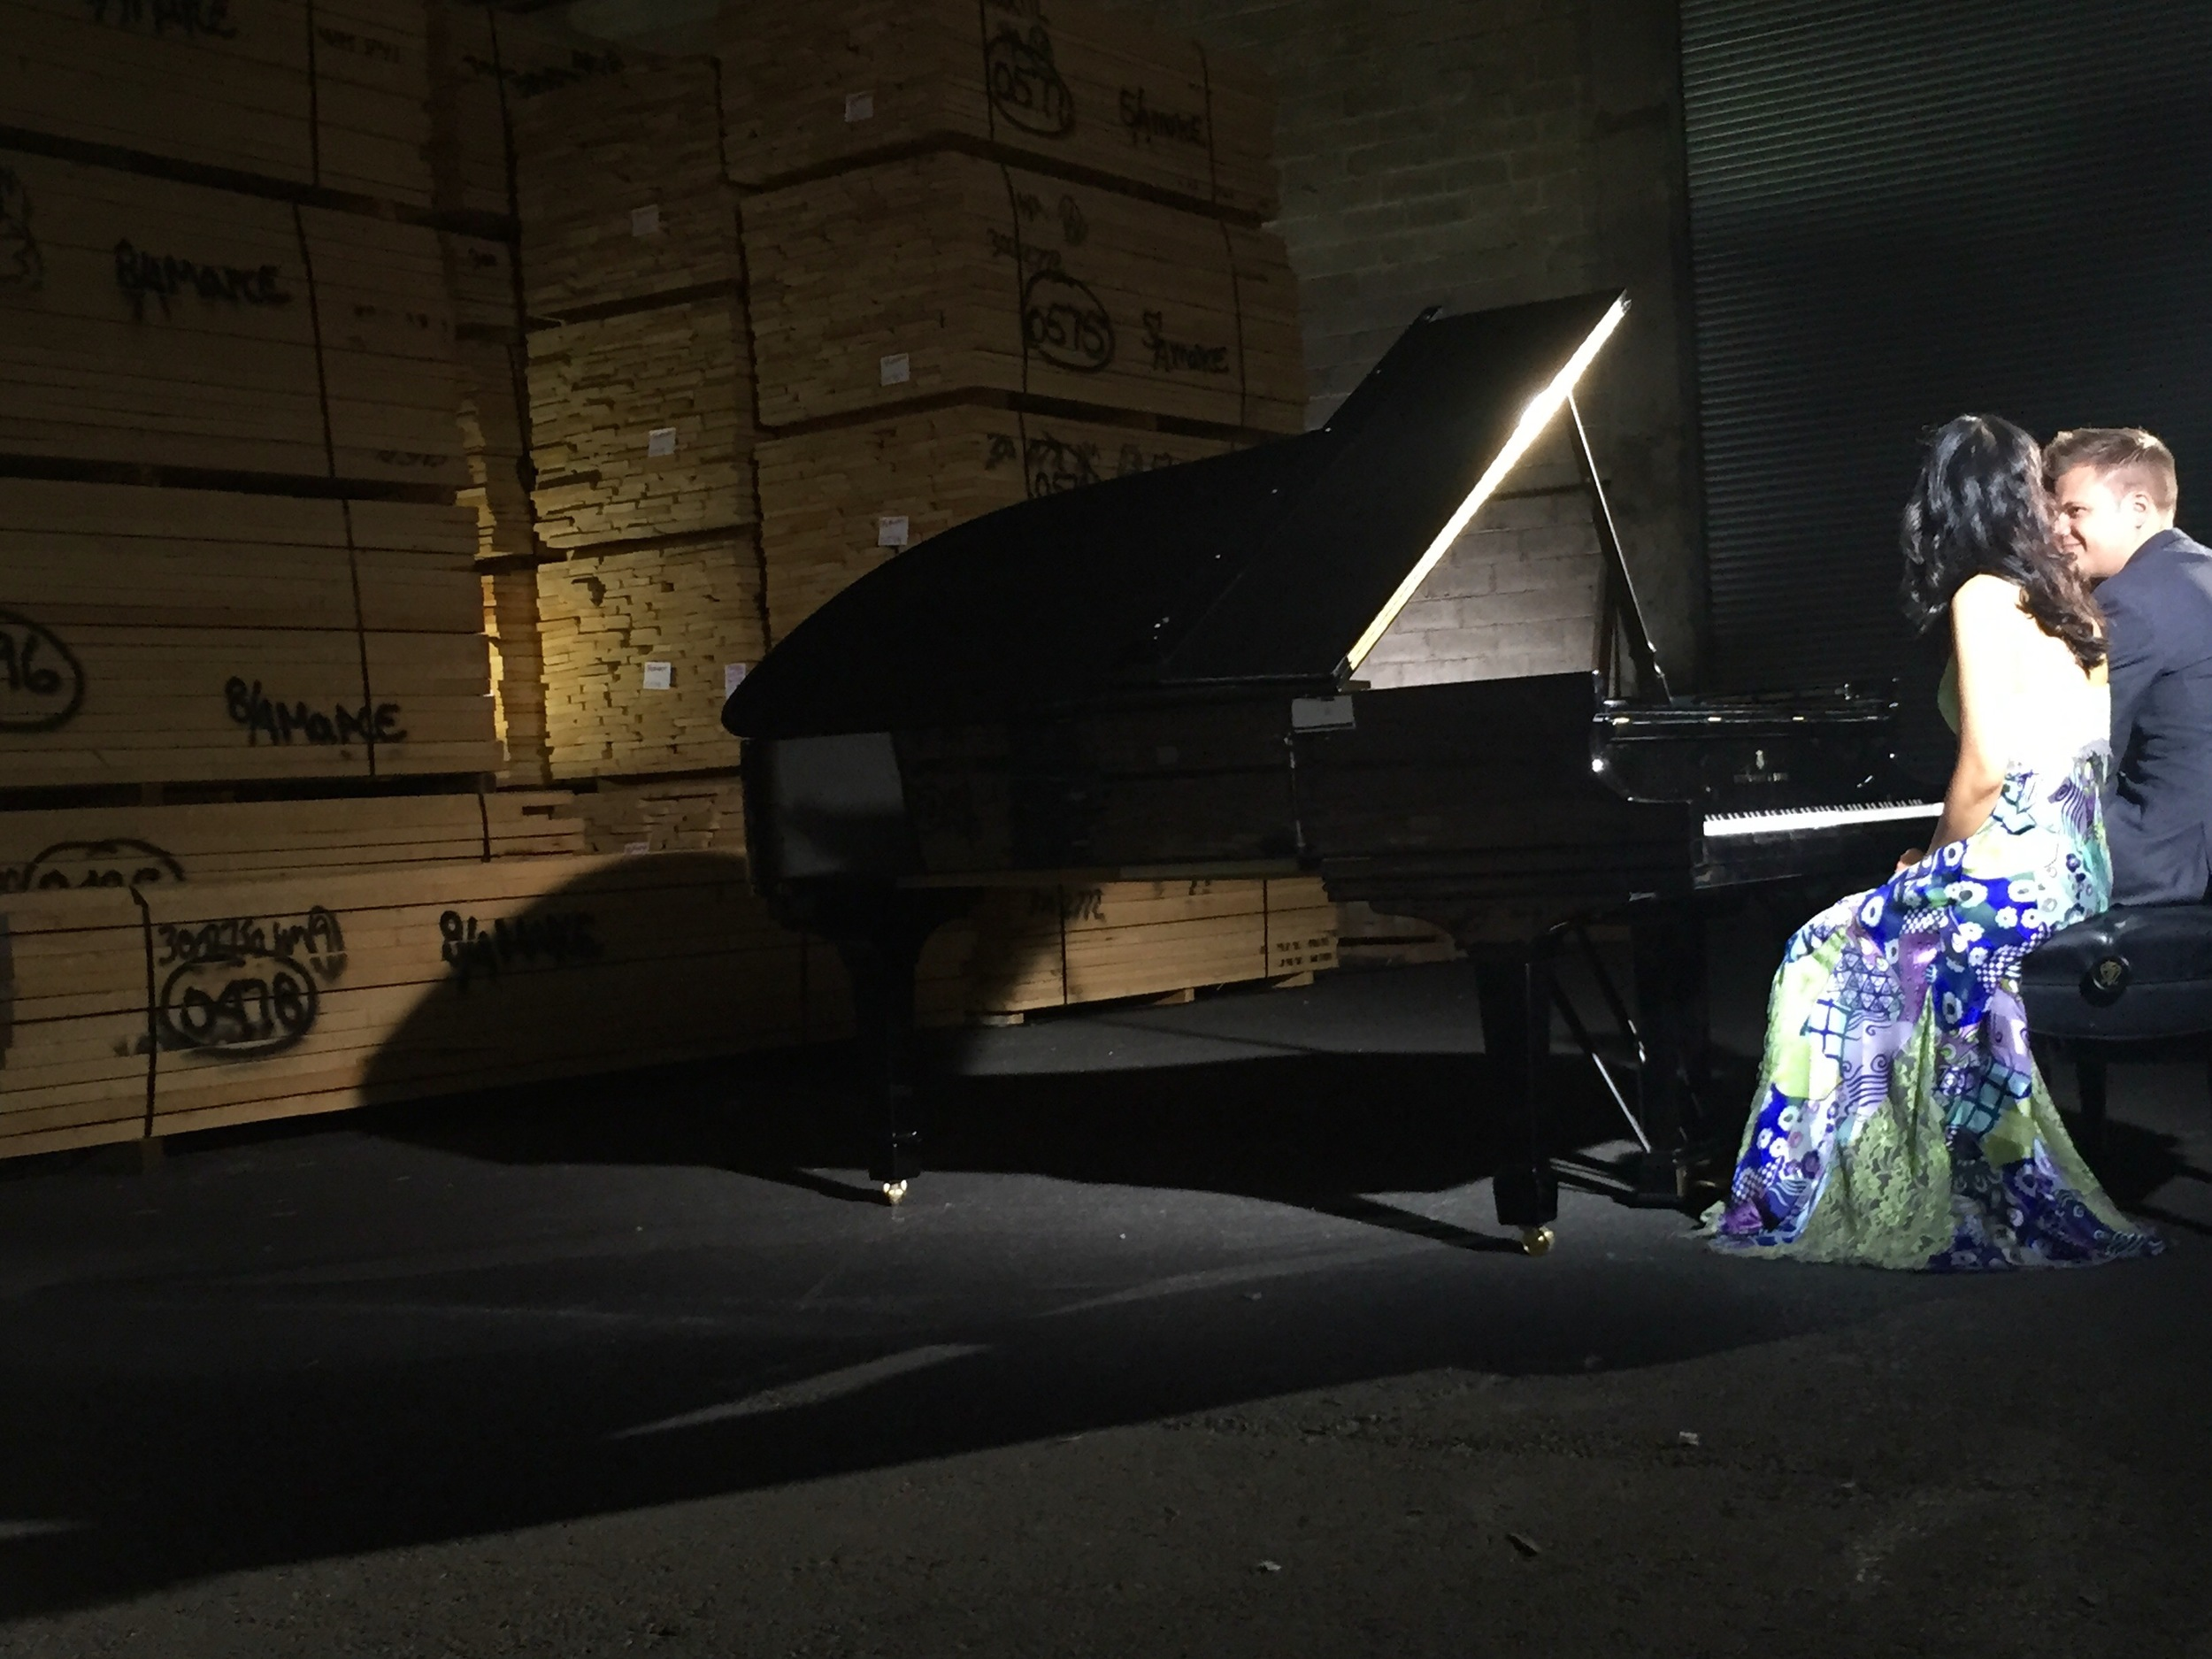 Waiting between takes ... behind-the-scenes at the Steinway Factory in Astoria, NY